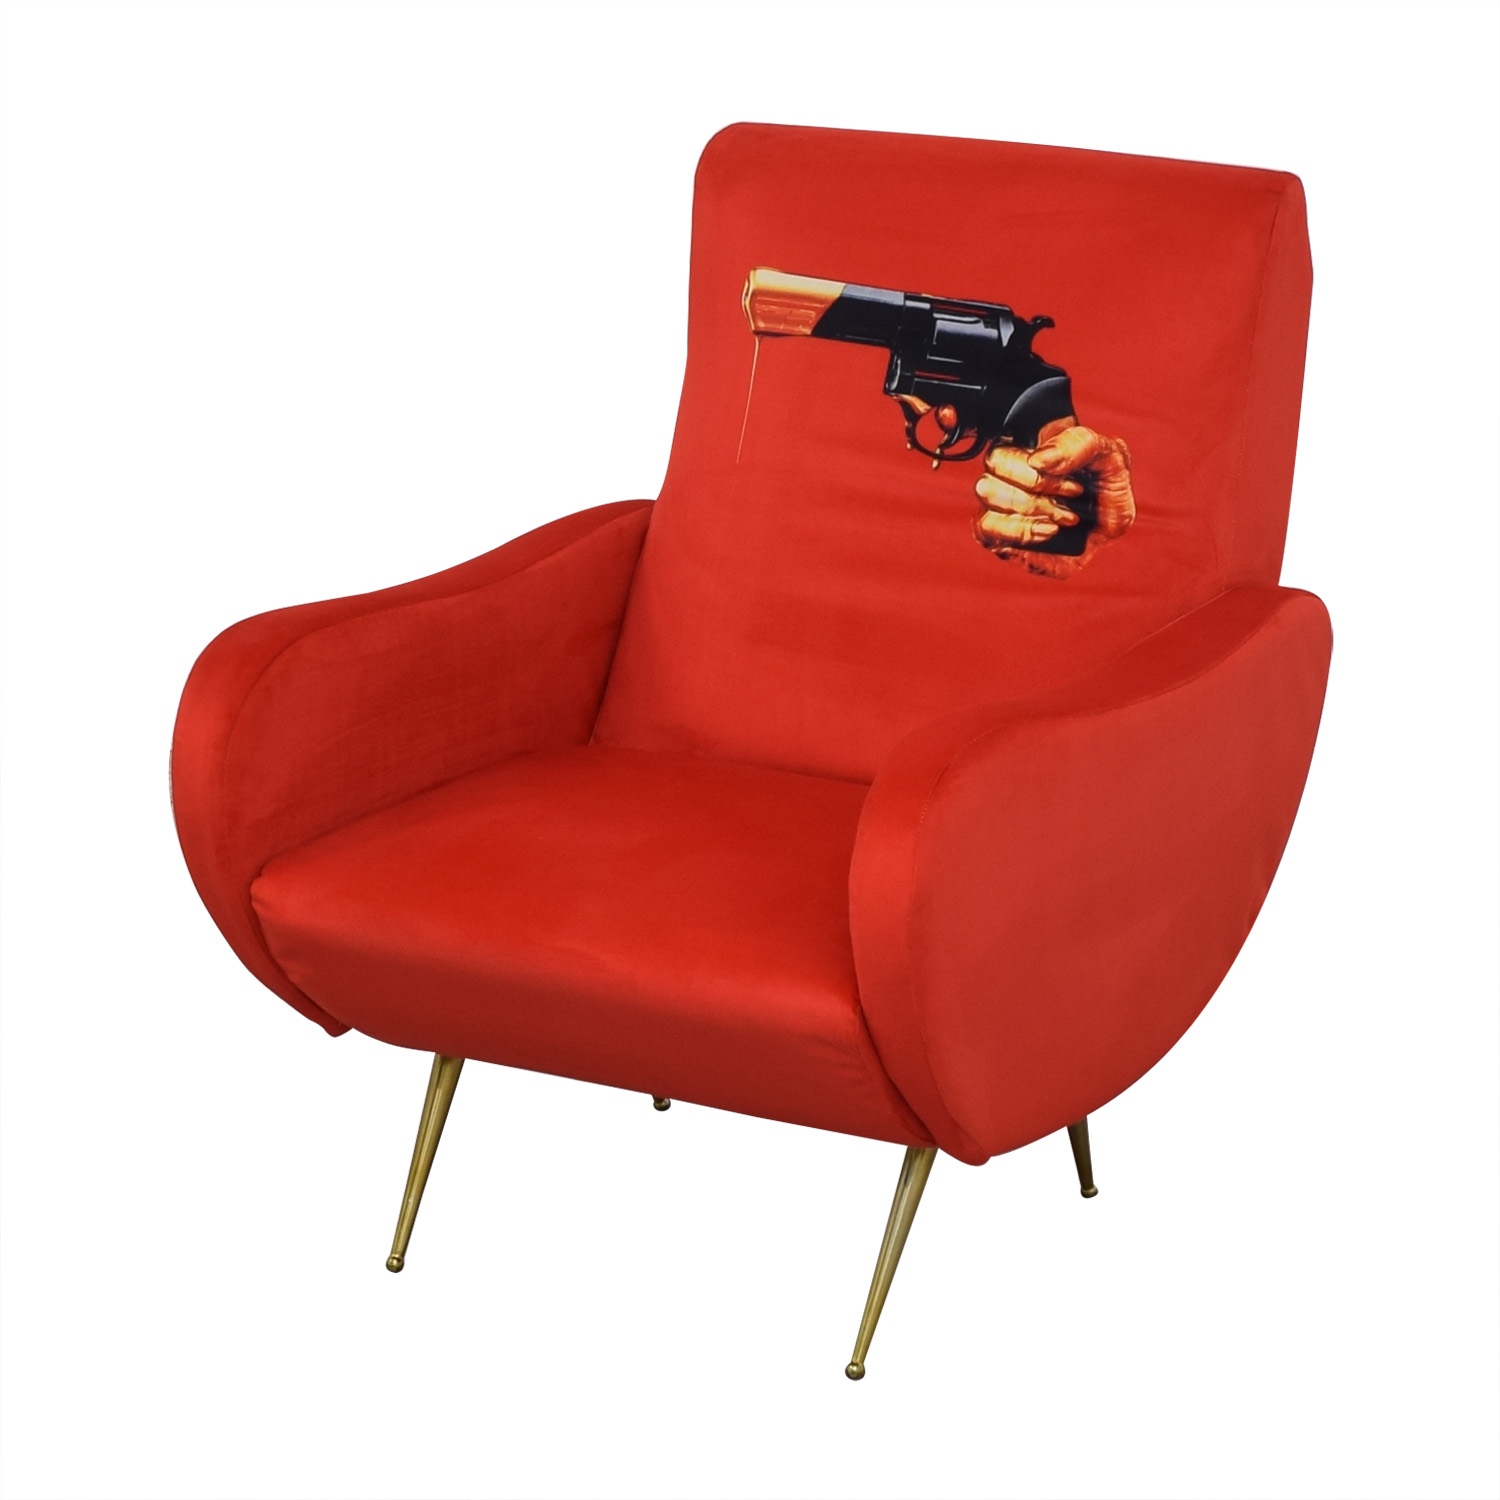 Seletti Revolver Armchair / Accent Chairs